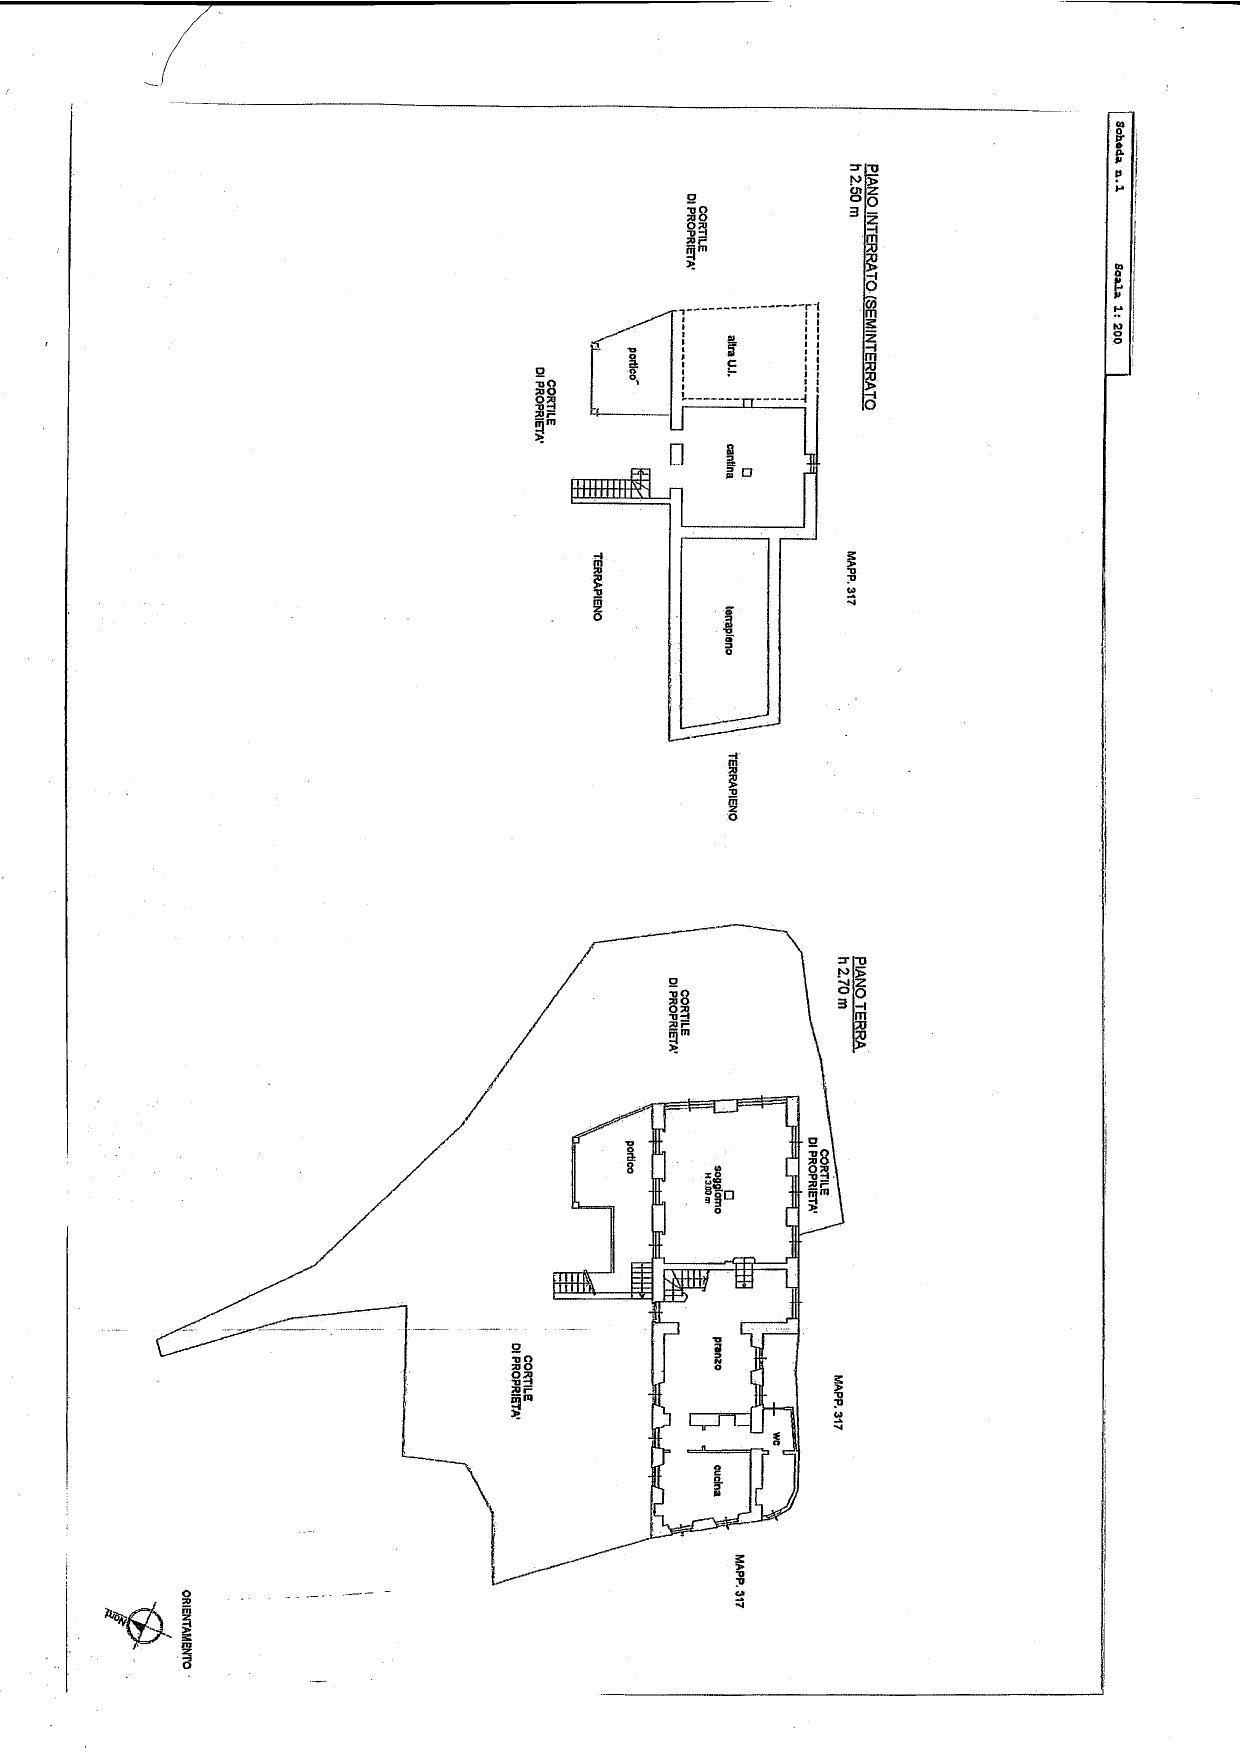 Floor plan of the house ground floor and basement